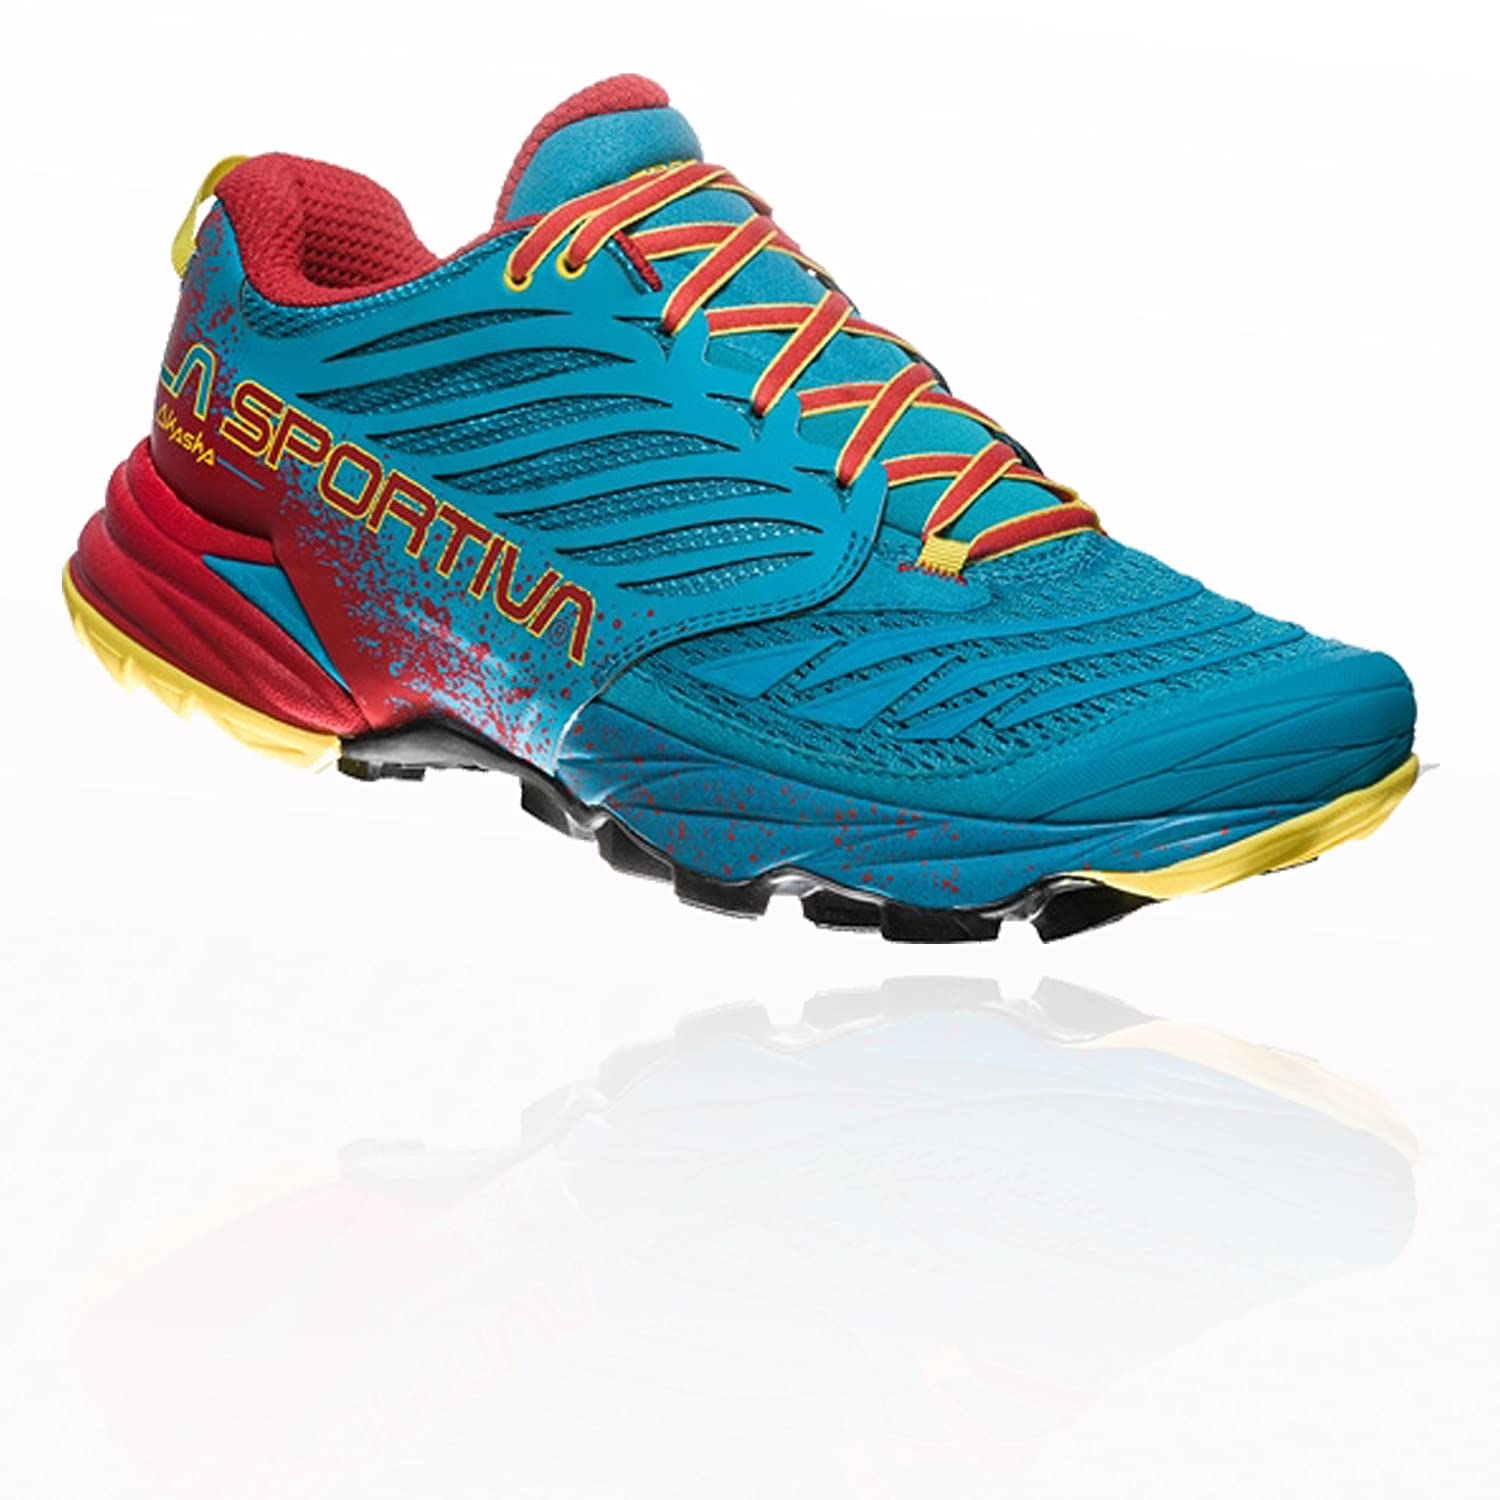 La Sportiva Akasha Tropic, Zapatillas de Trail Running para Hombre 42 EU|Multicolor (Blue/Cardinal Red 000)